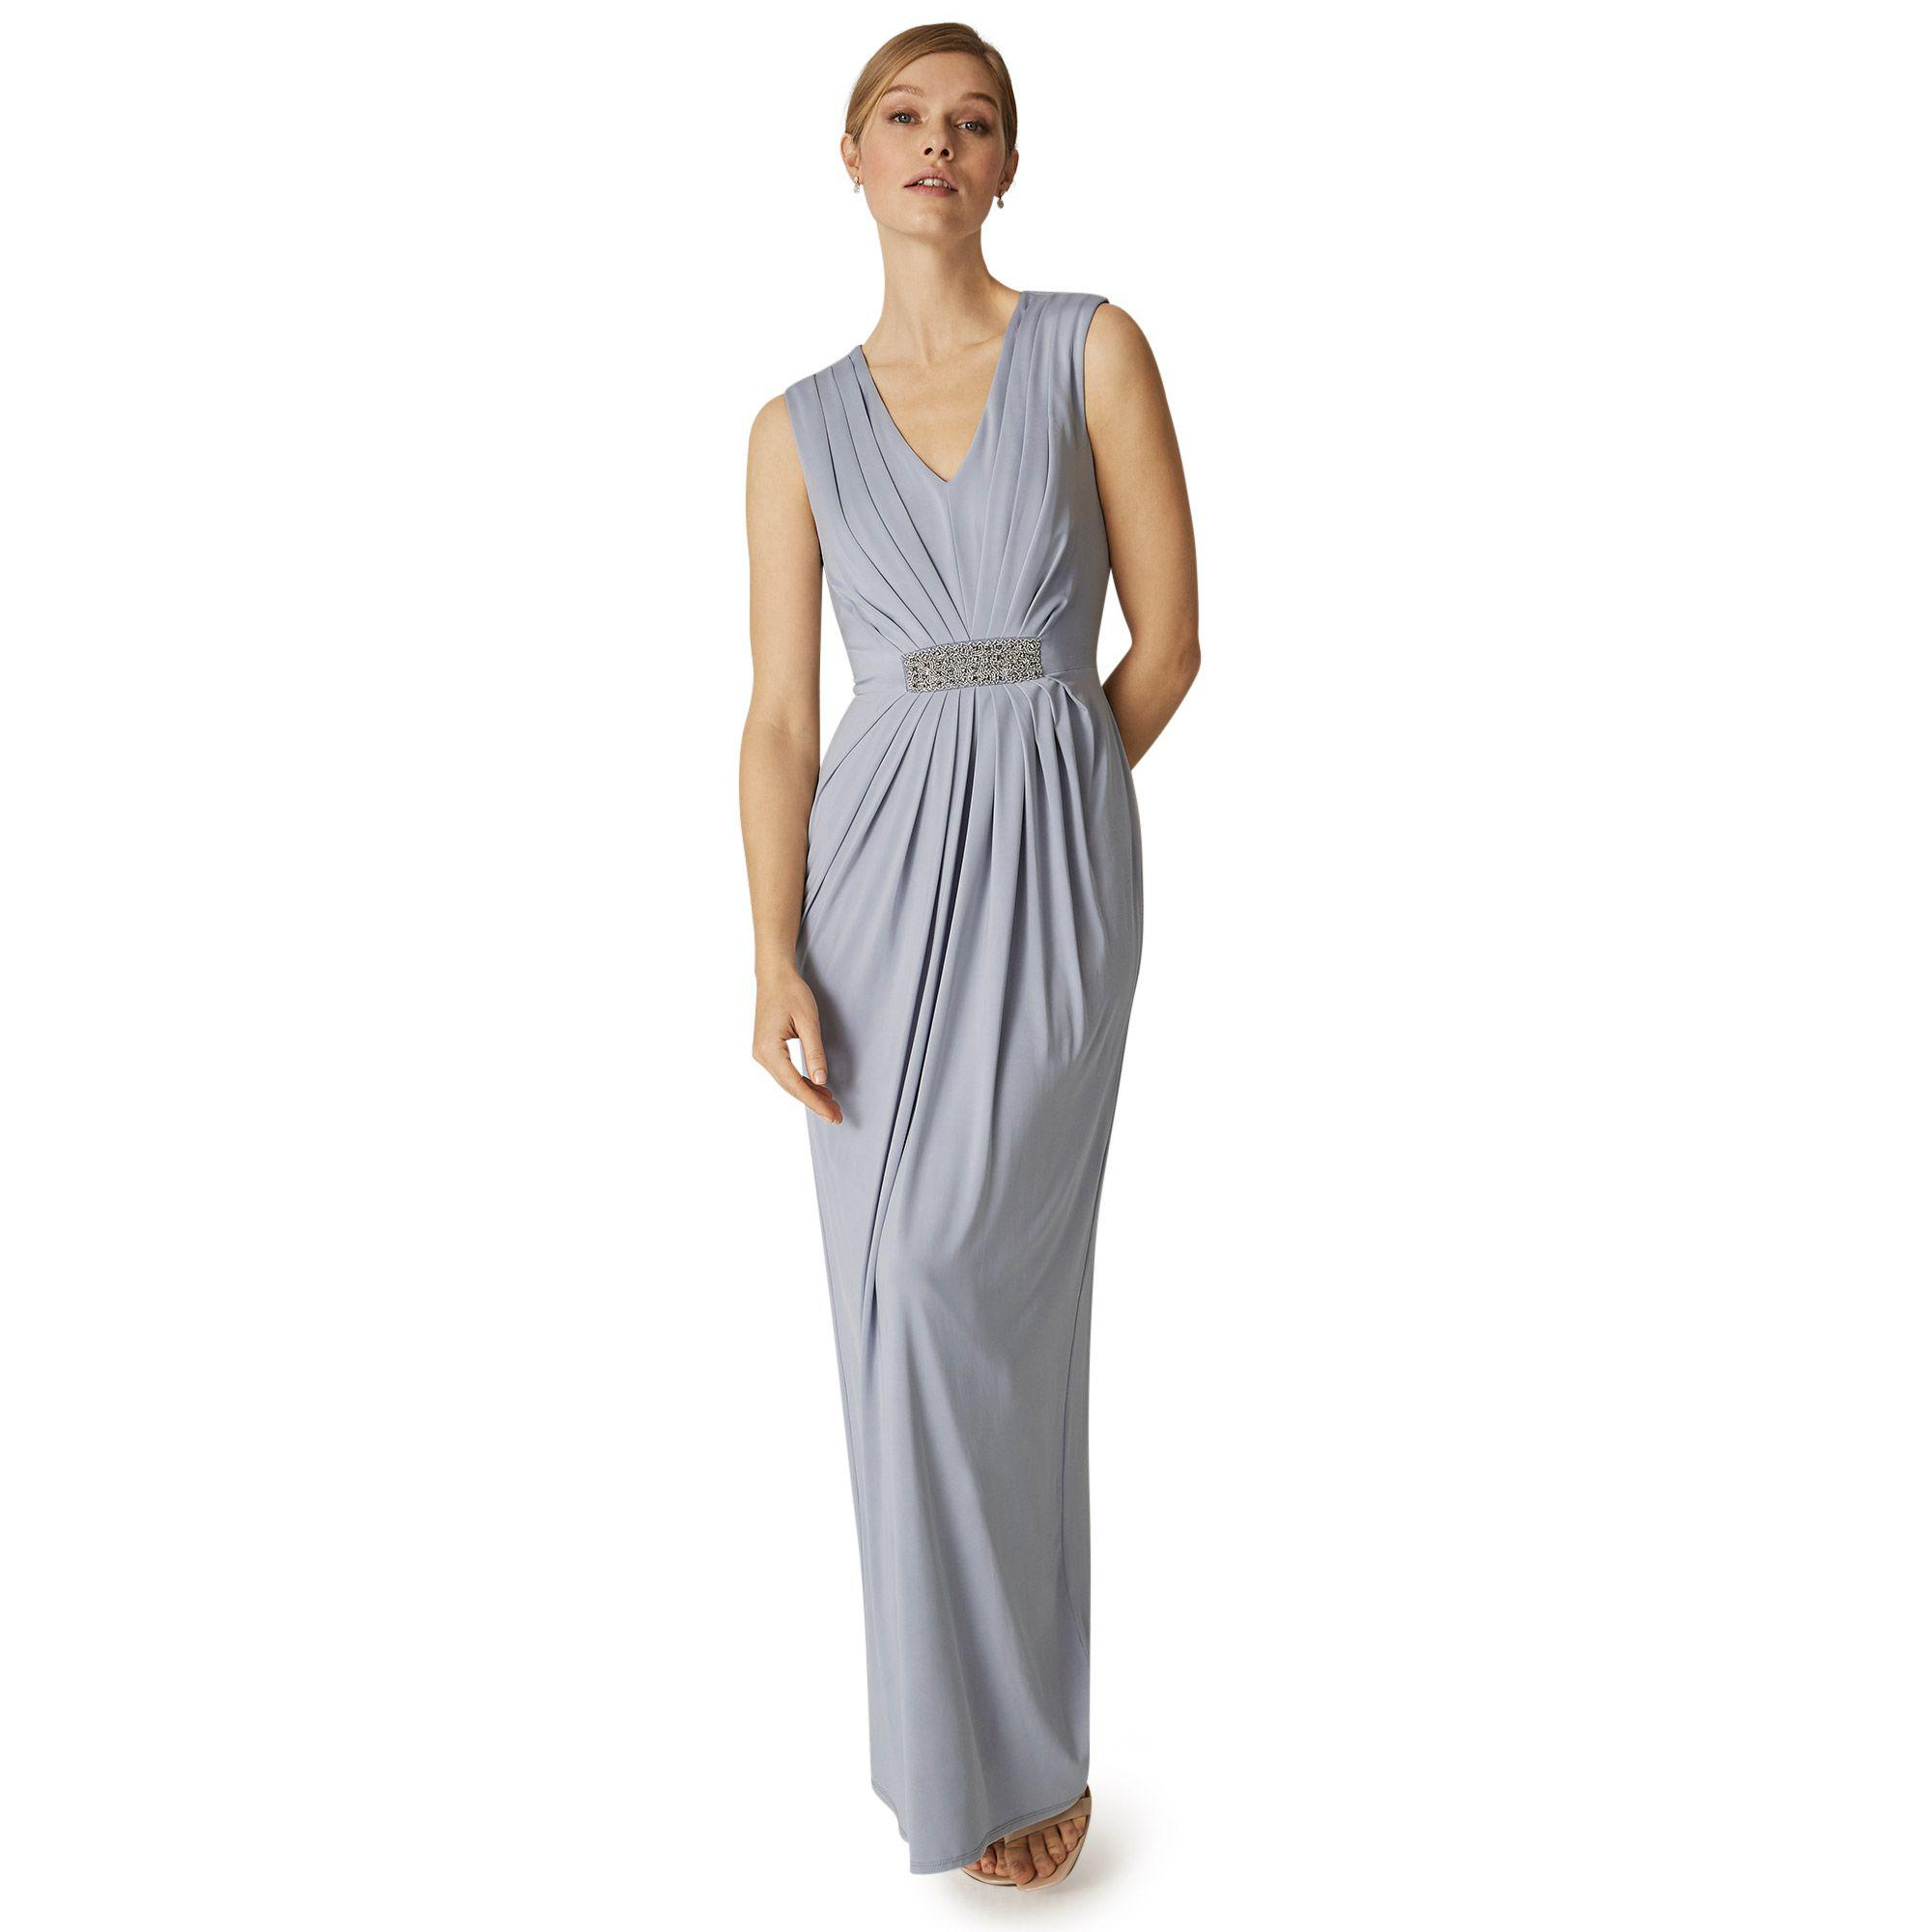 30053ceb9f Phase Eight Natural Martha Embellished Maxi Dress in Natural - Lyst